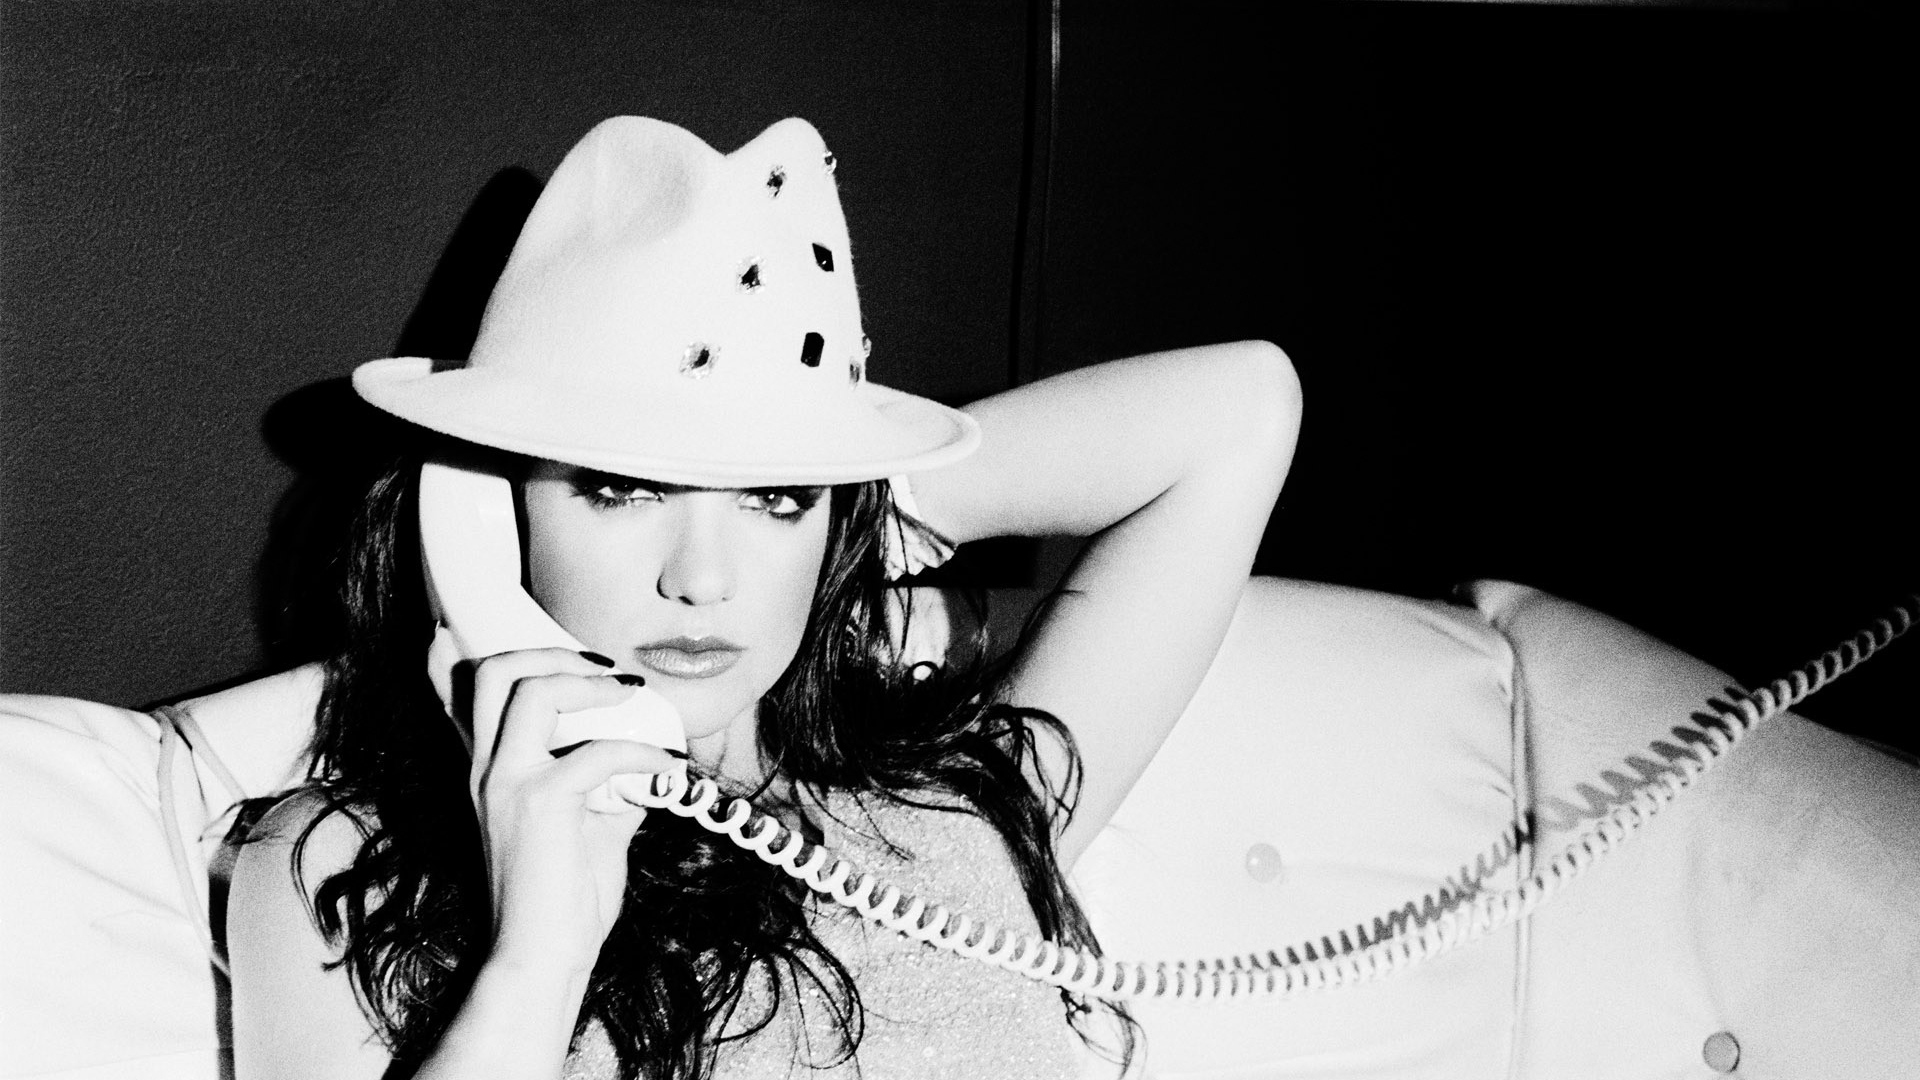 Download Wallpaper 1920x1080 Britney Spears Phone Look Hat Singer Black And White Full Hd 1080p Hd Background